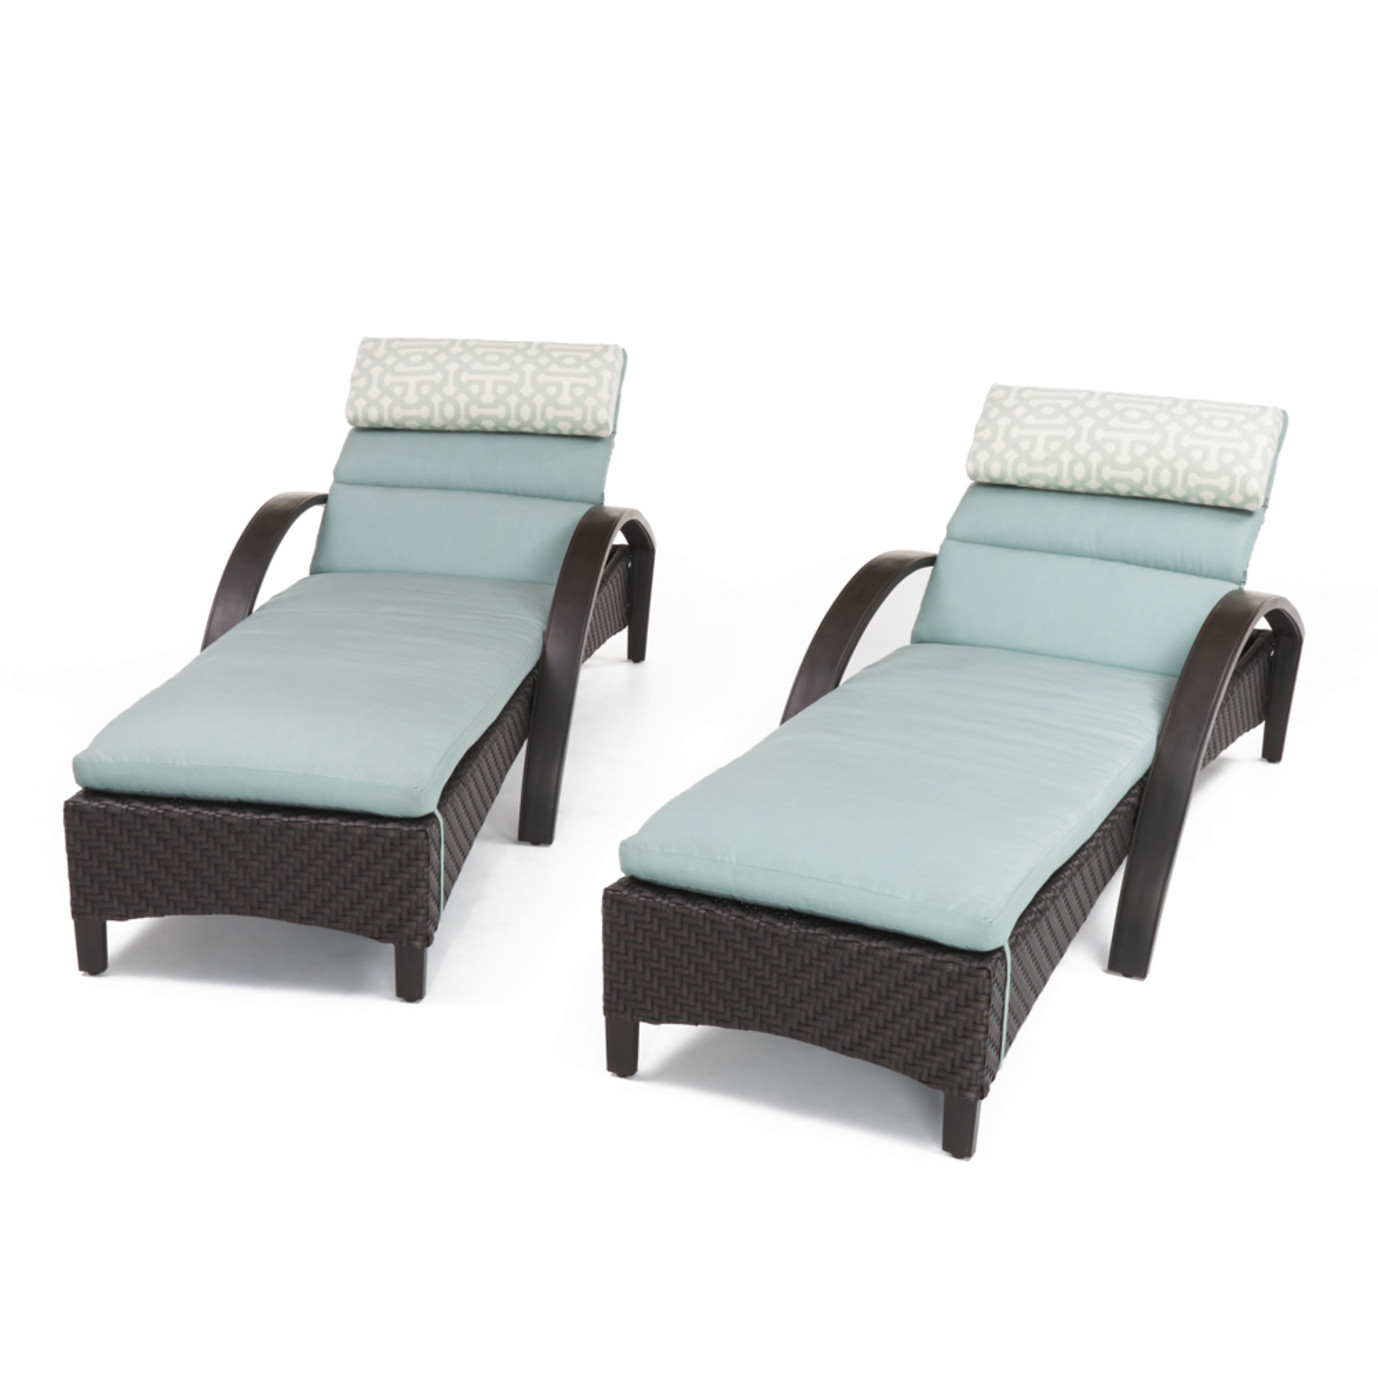 Barcelo Chaise Lounge 2pk Spa Blue Rst Brands